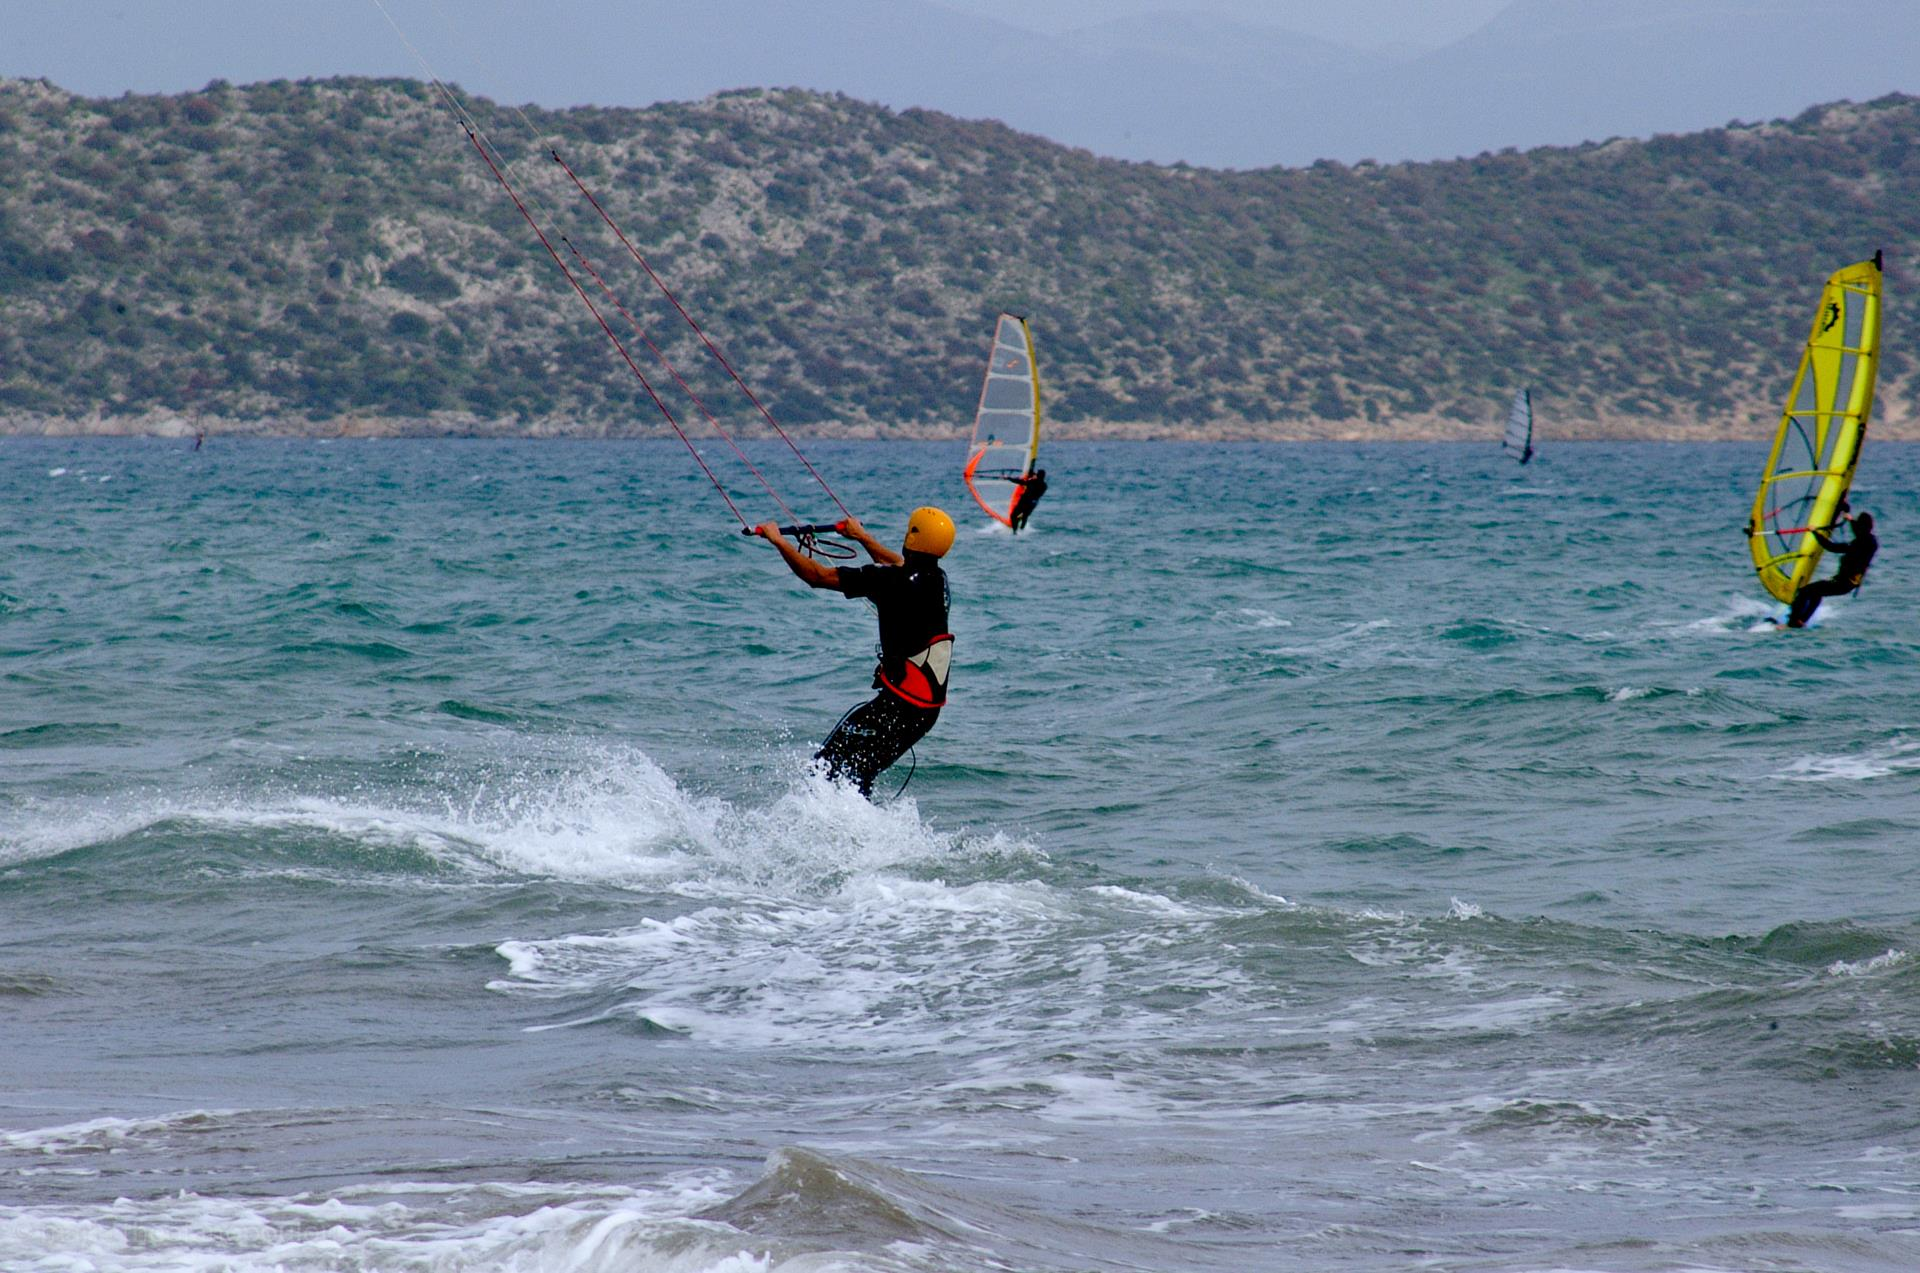 Ideal beaches for windsurfing and kite surfing SCHINIAS (Settlement) MARATHONAS